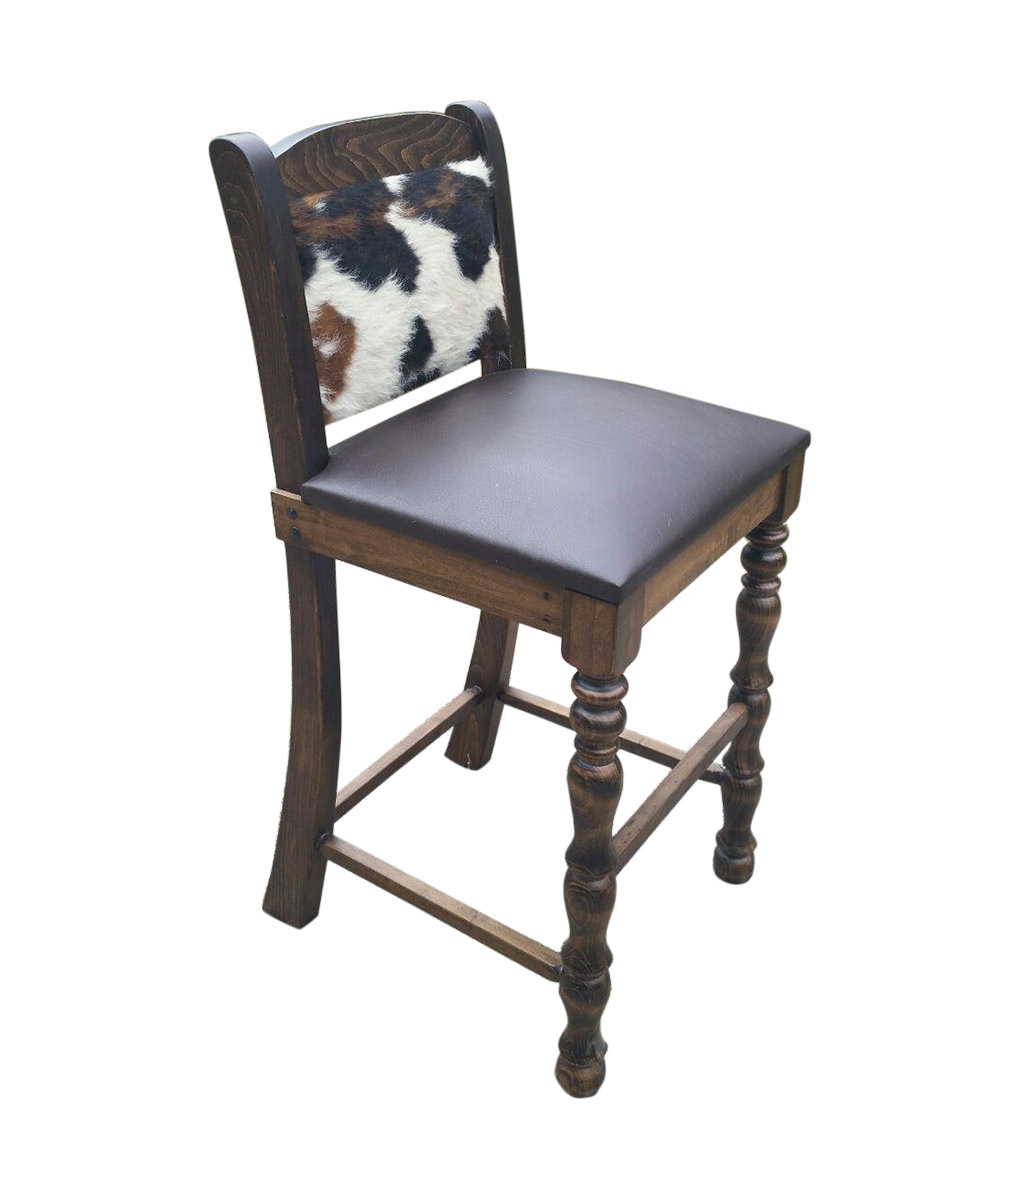 Stool Chair Cowhide Counter Stool Dining Chair Bar Stool